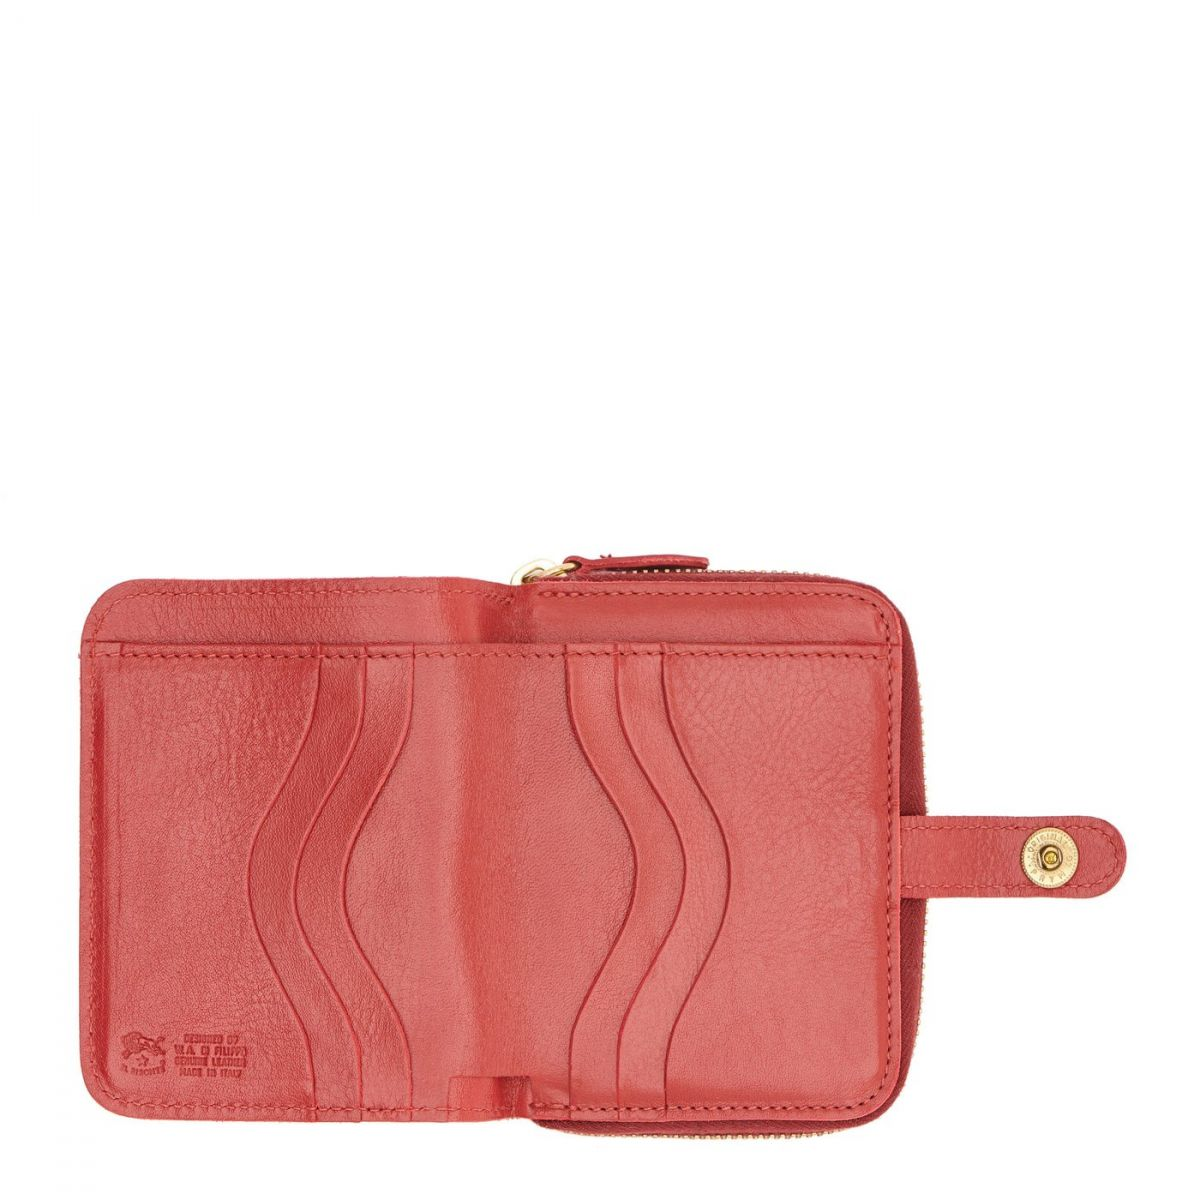 Wallet  in Cowhide Double Leather SMW049 color Red | Details